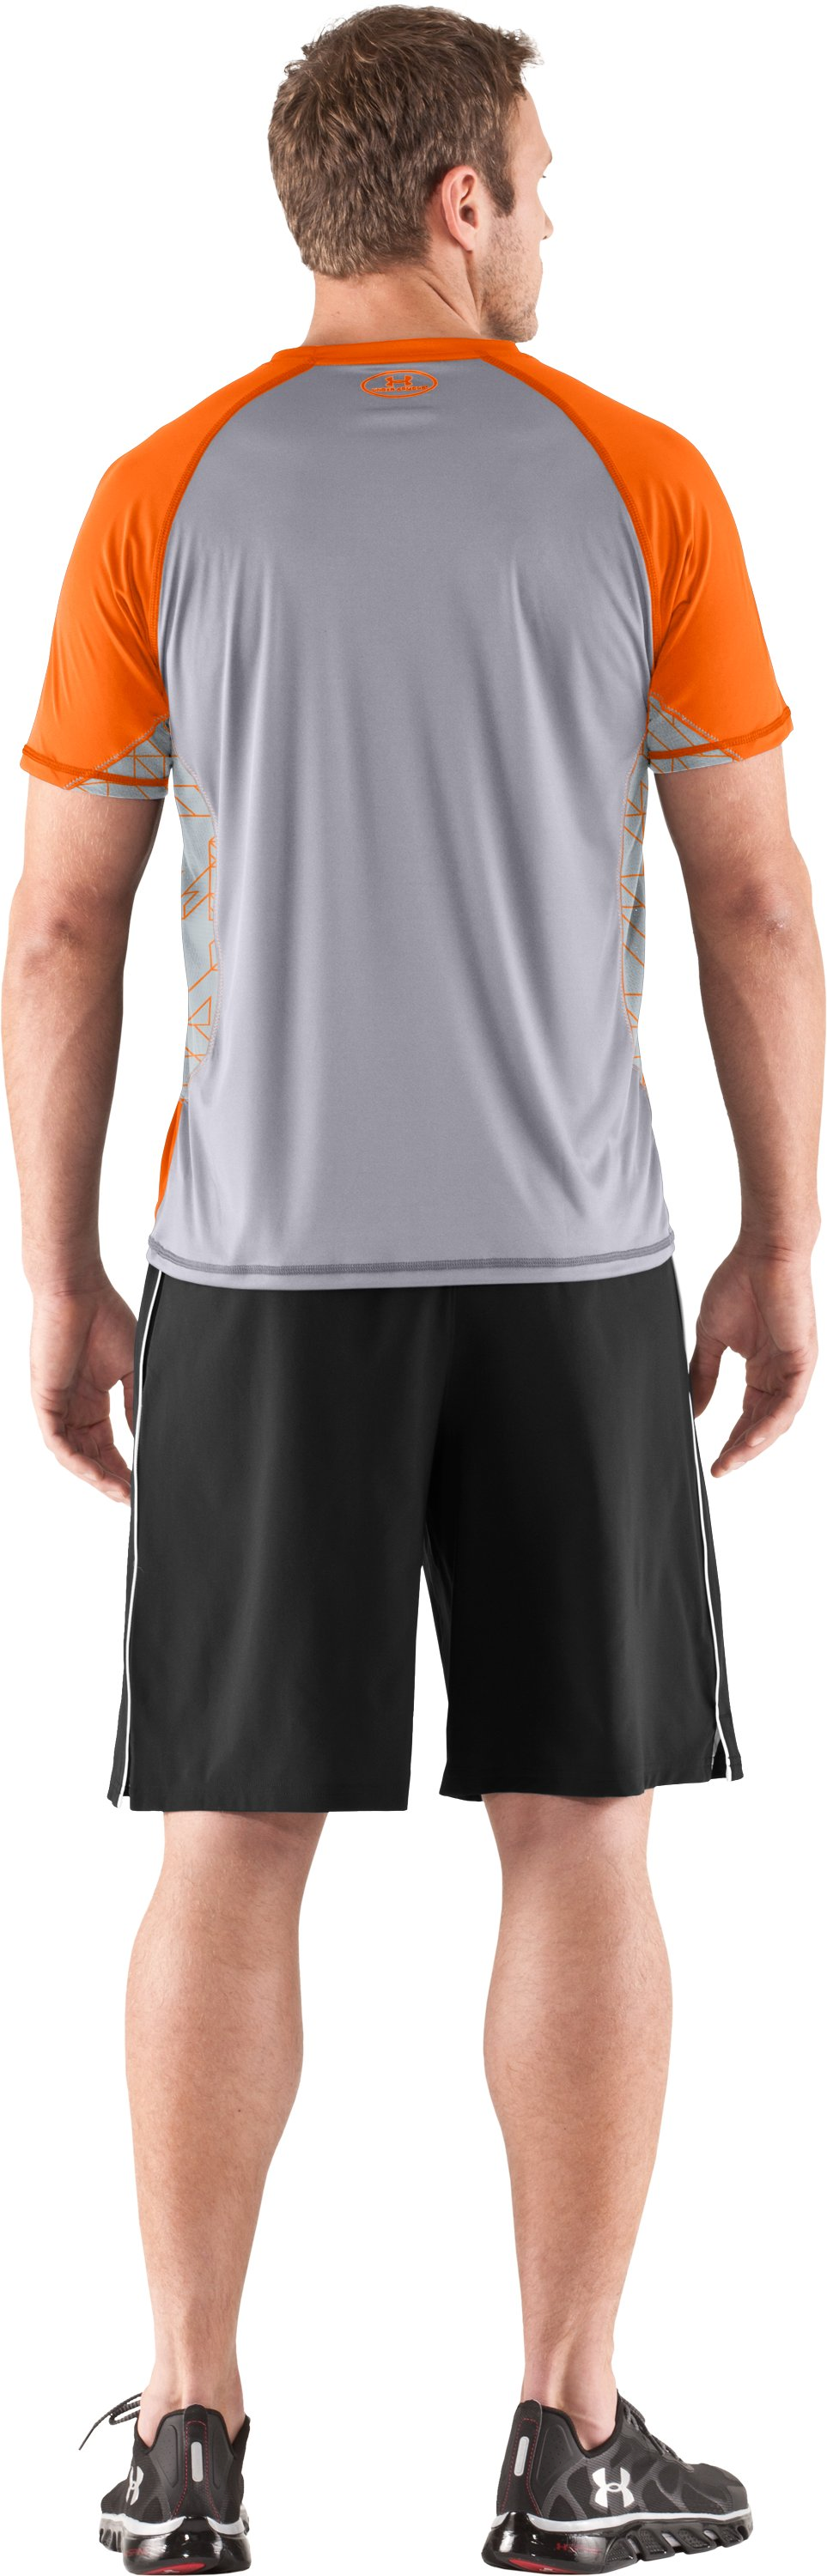 Men's HeatGear® Flyweight Short Sleeve, Vivid, Back